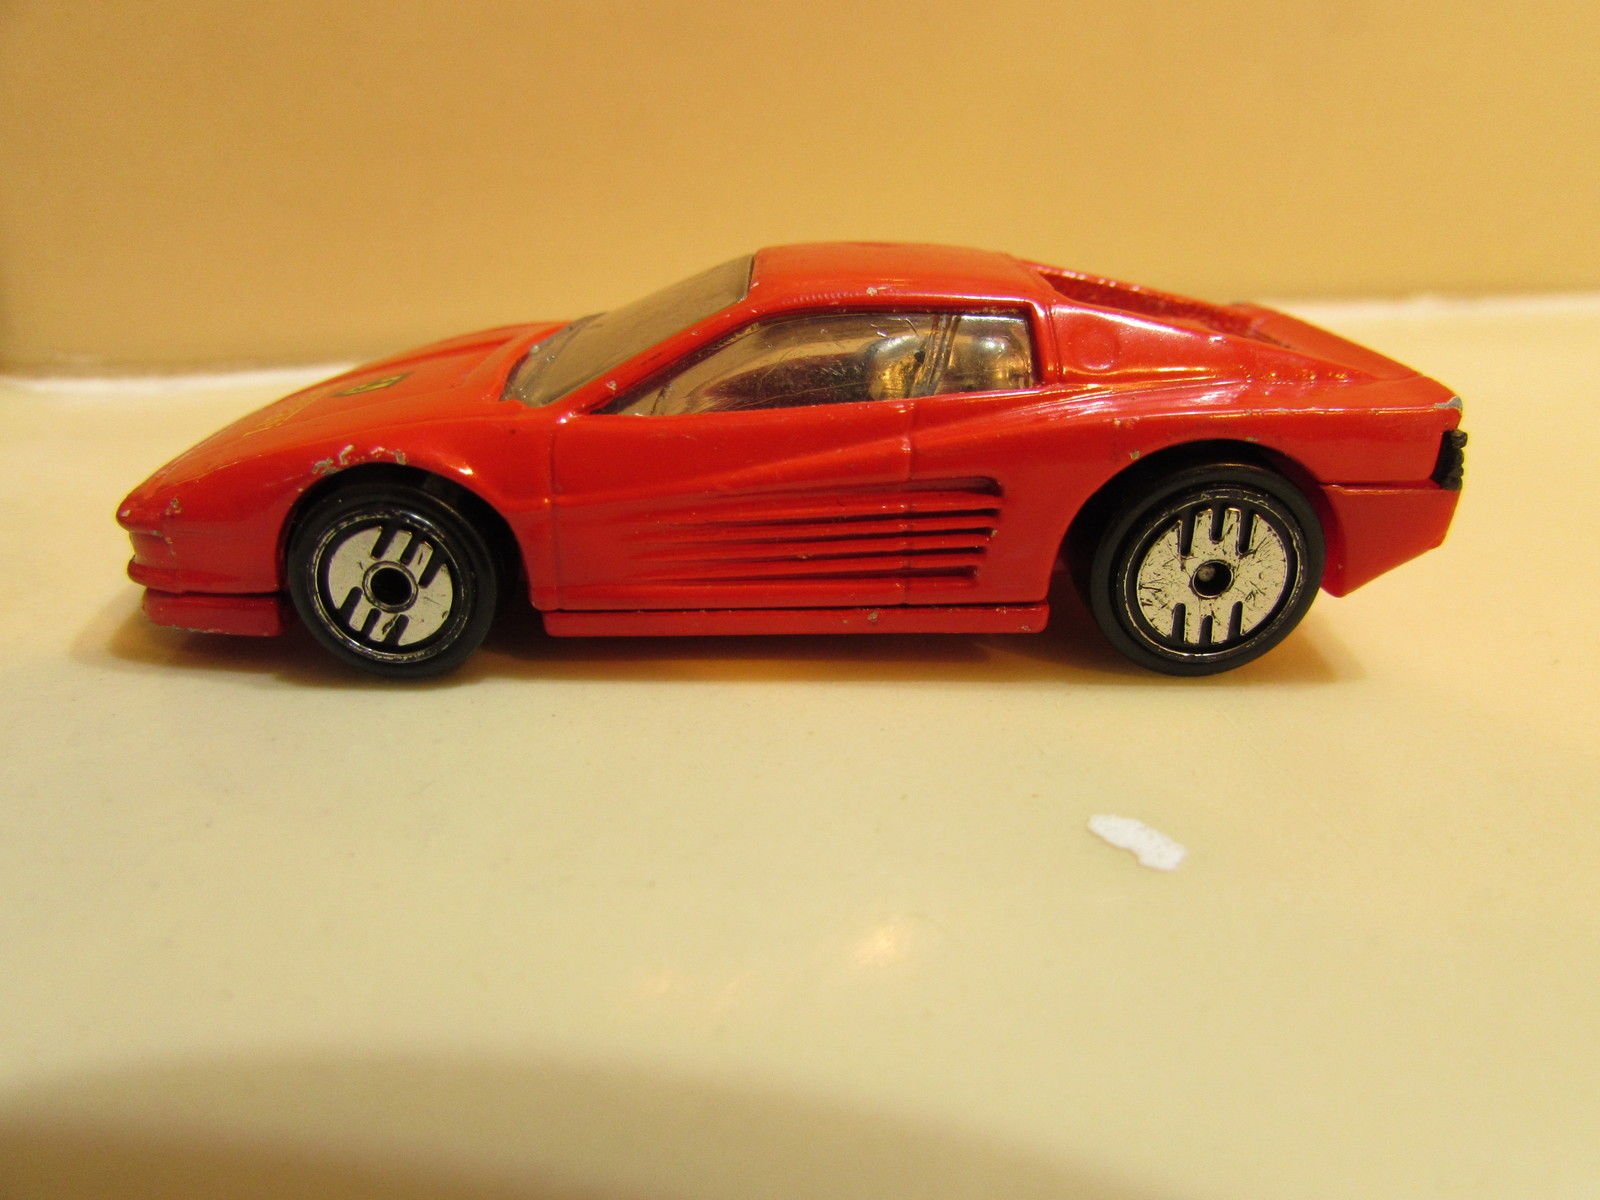 HOT WHEELS FERRARI 1985 TESTAROSSA LOOSE